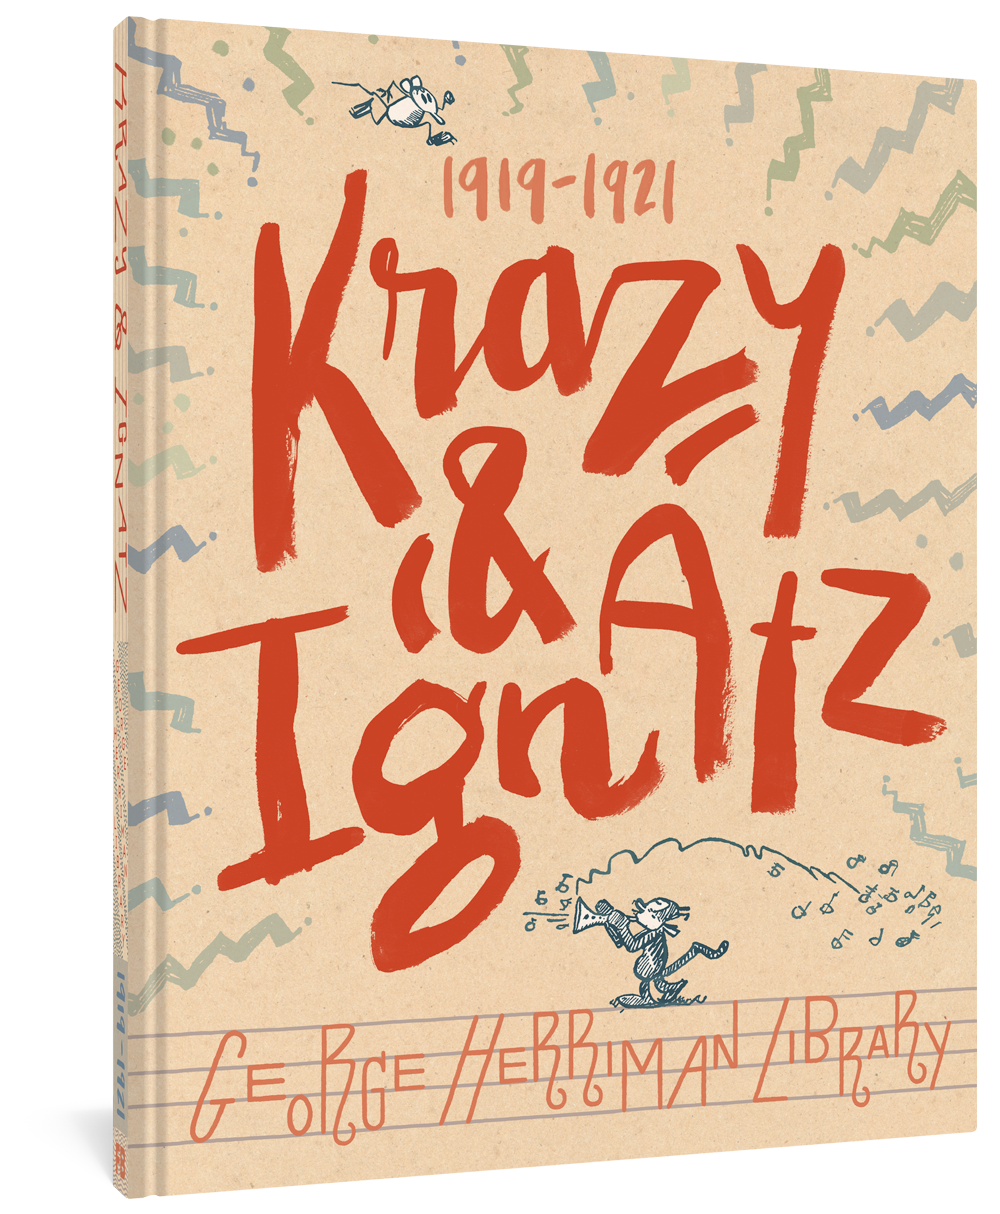 The George Herriman Library: Krazy & Ignatz 1919-1921